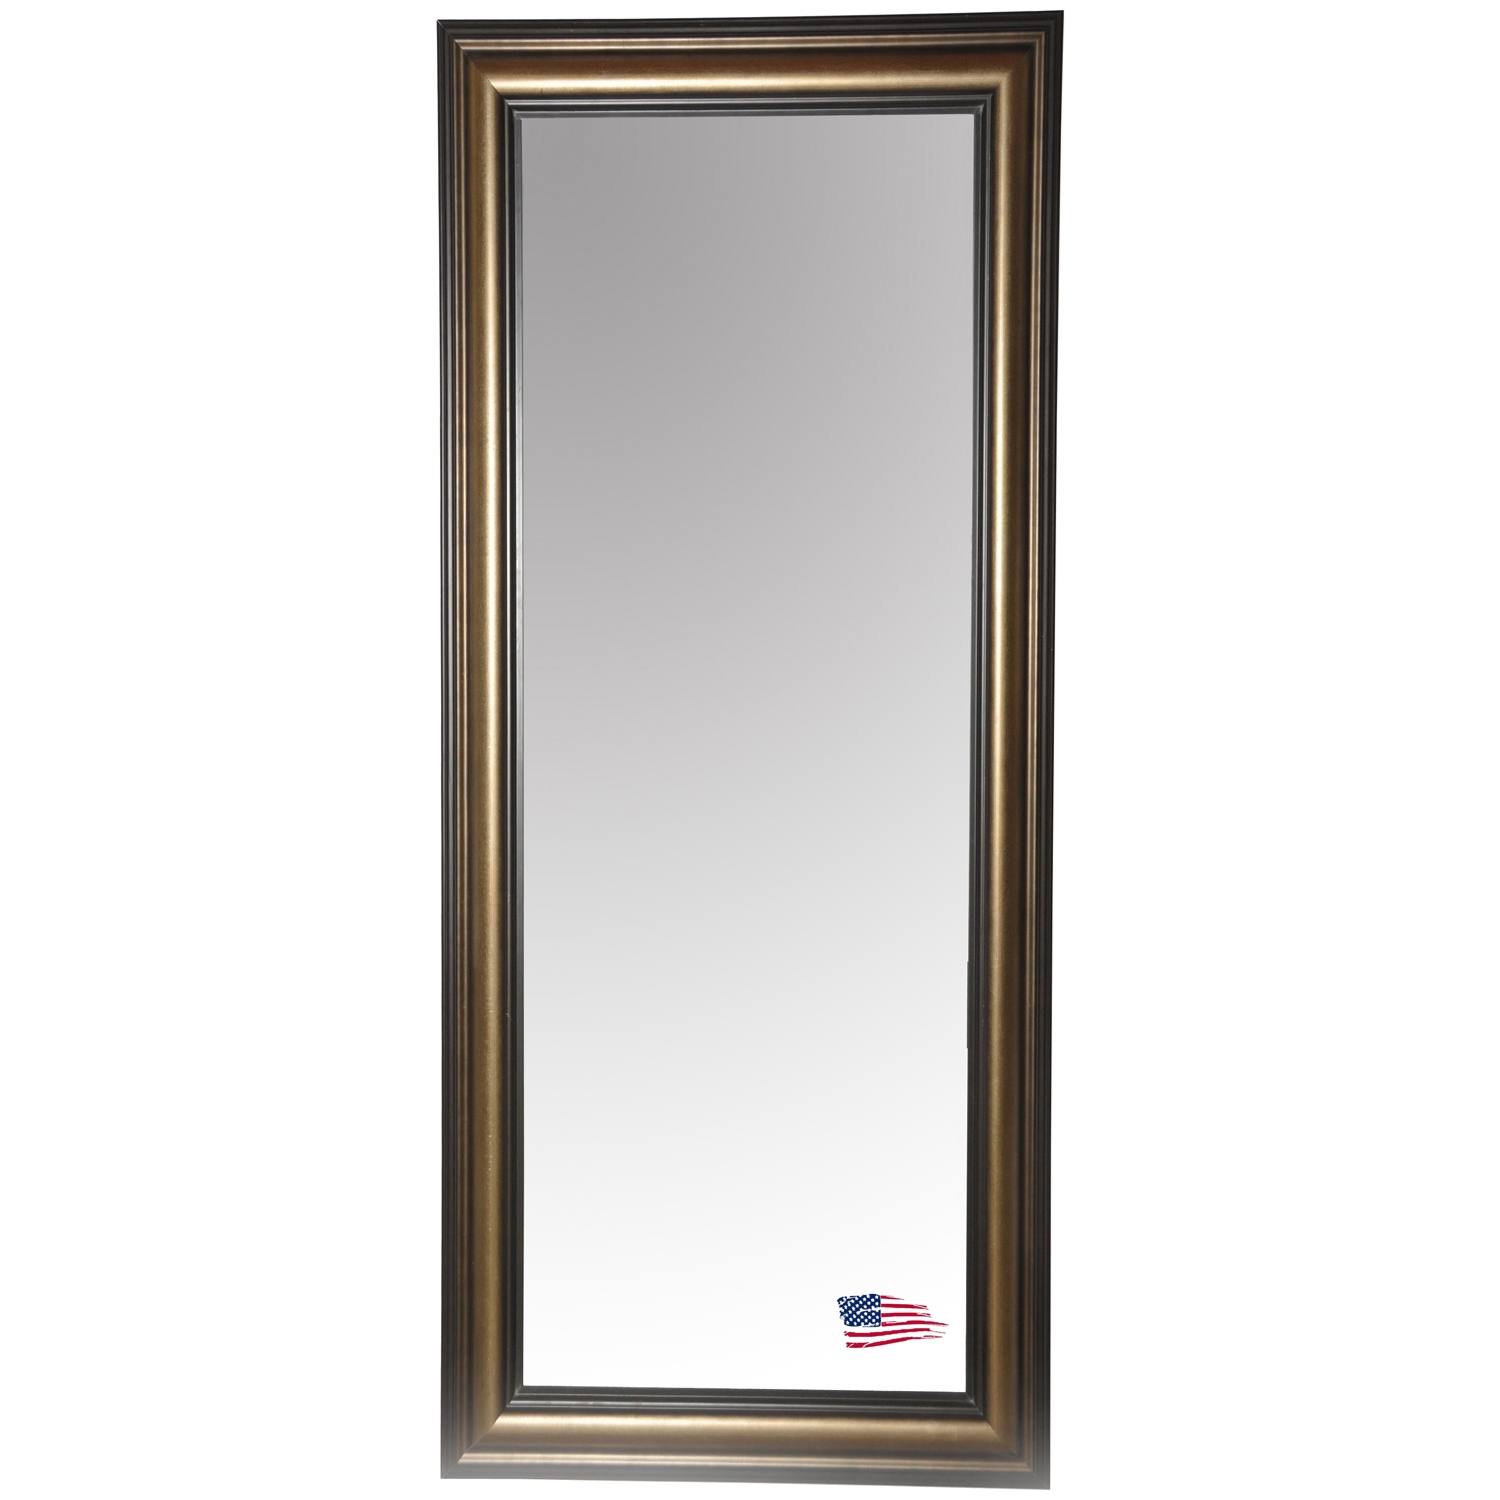 Rectangular Mirror - Stepped Antiqued Silver & Black Frame - RAY-R007T